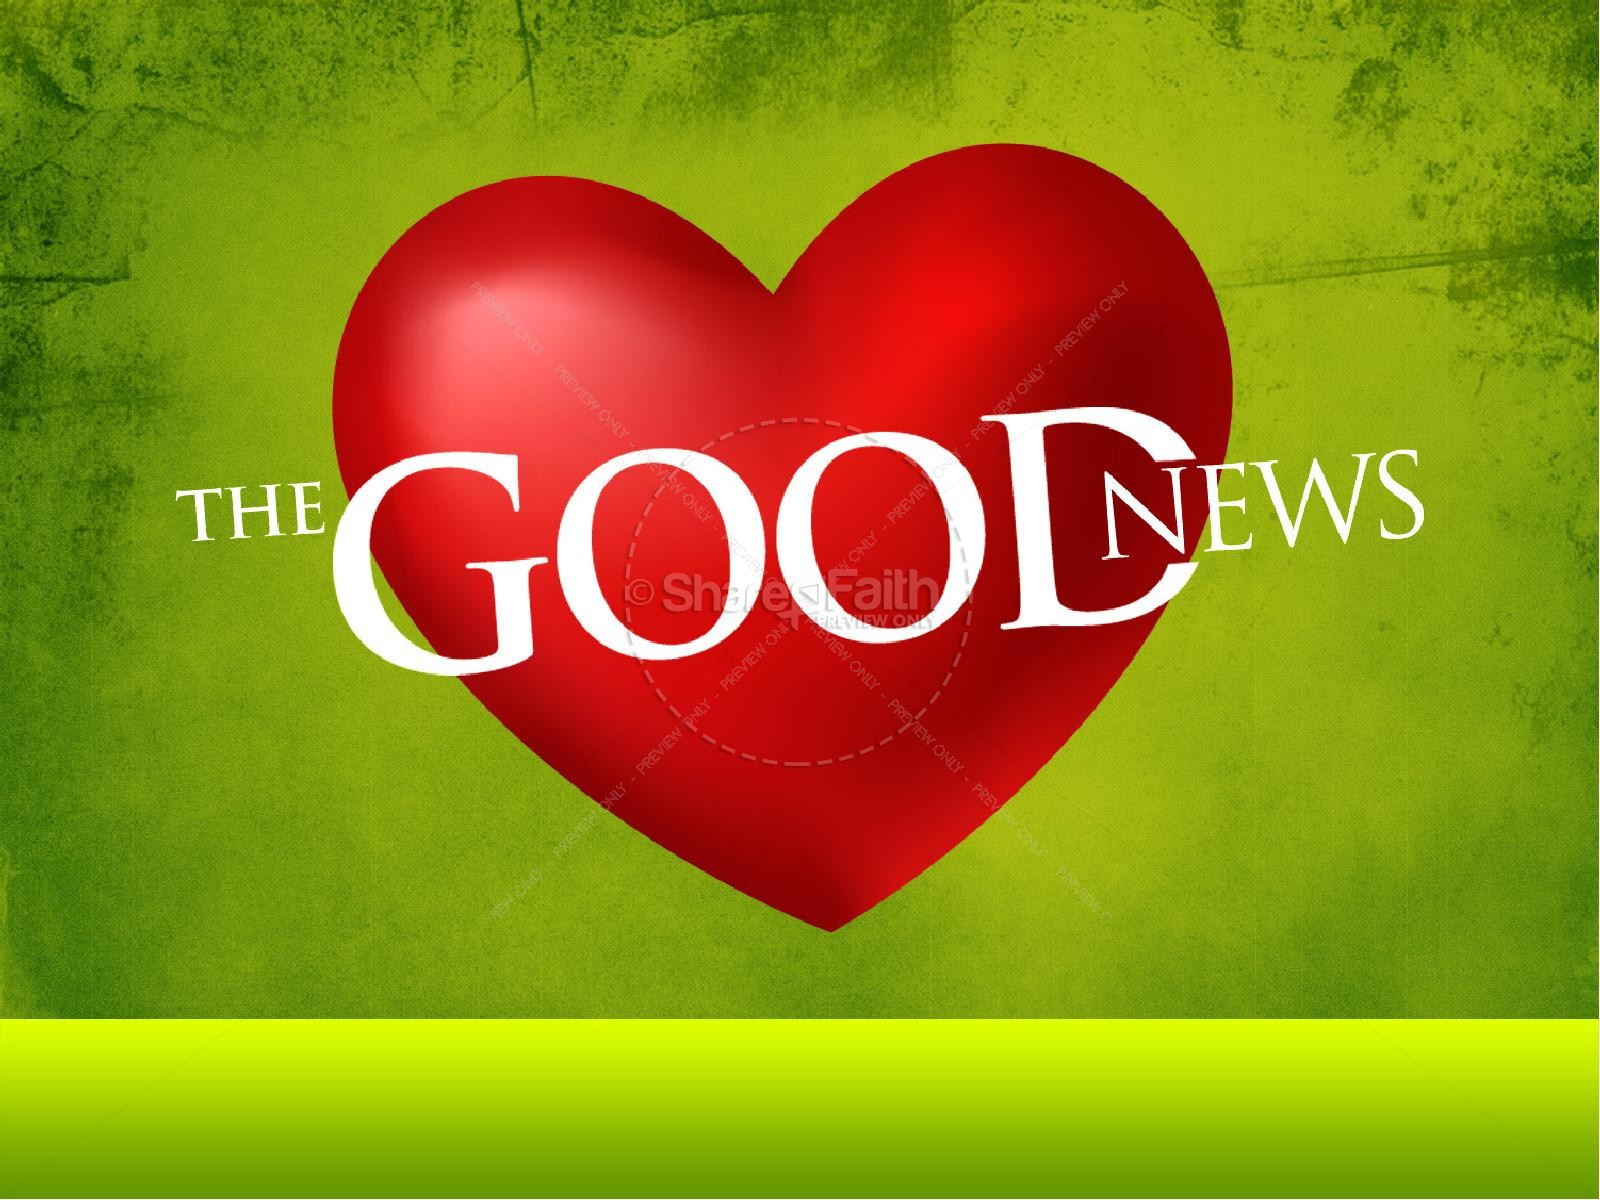 The Good News PowerPoint